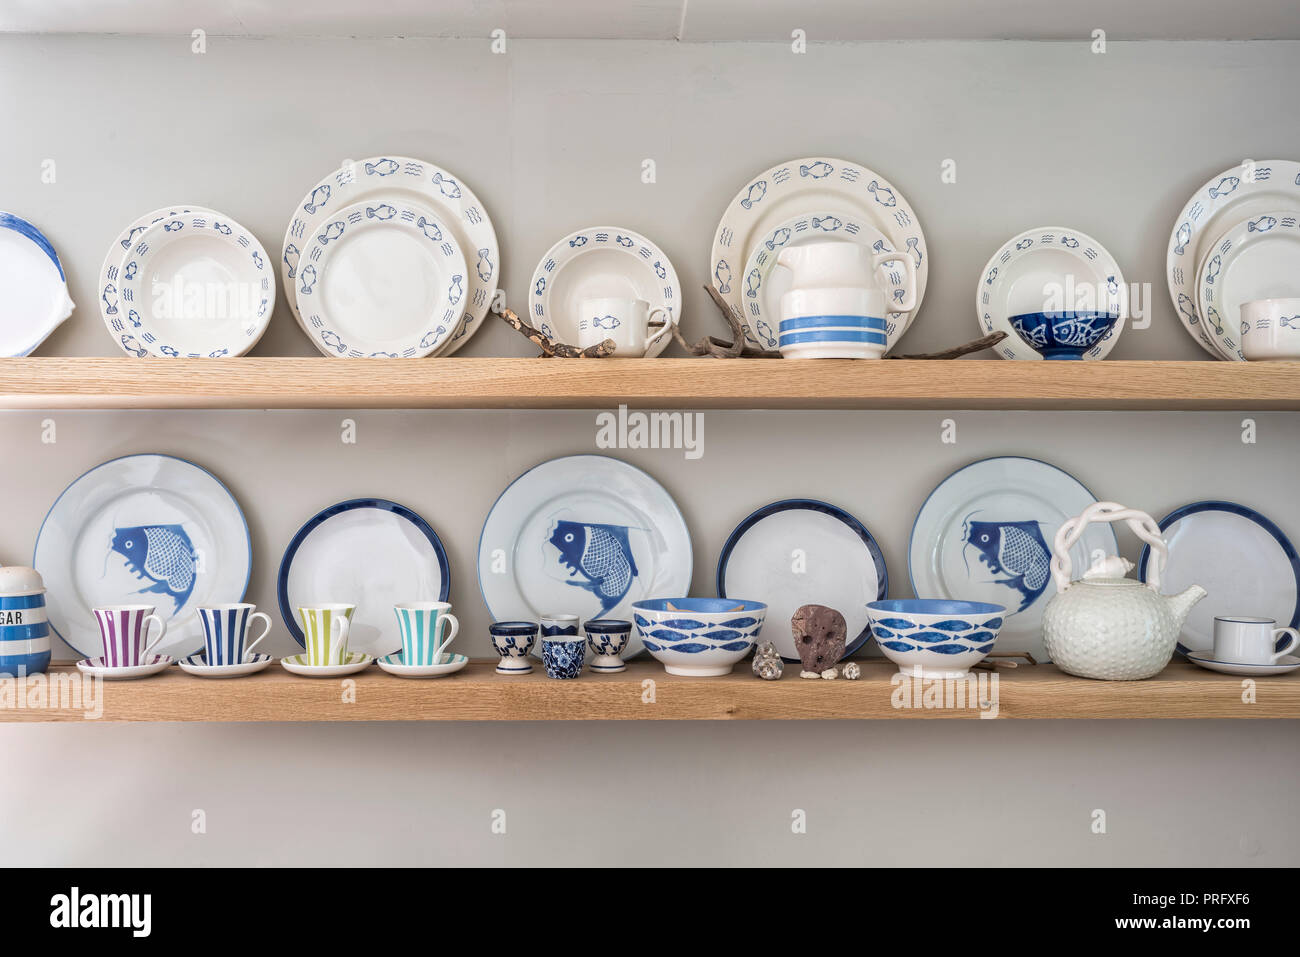 Collection of blue and white crockery on kitchen shelves in Devon cottage - Stock Image